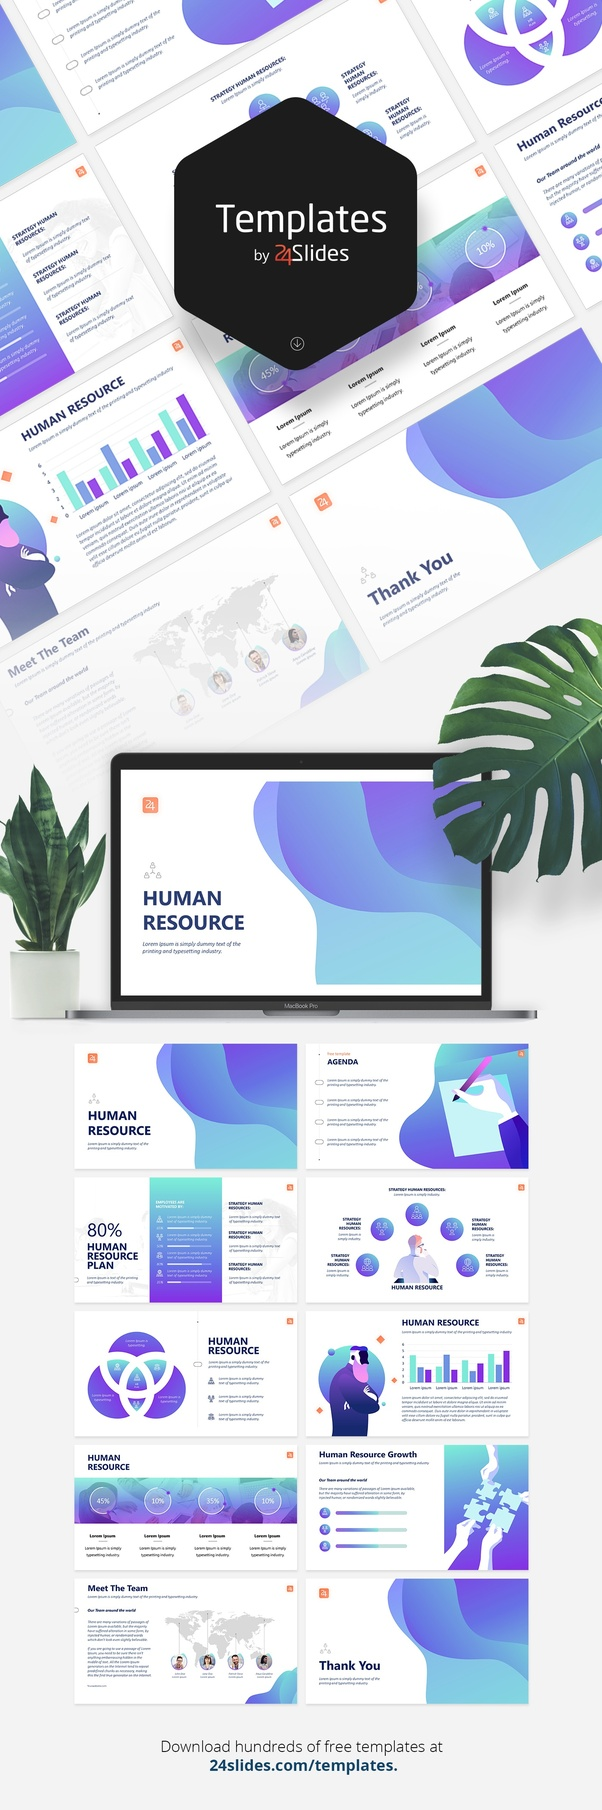 What are some good websites for free microsoft powerpoint templates and if youre curious for more awesome templates head to templates by 24slides for free templates toneelgroepblik Image collections